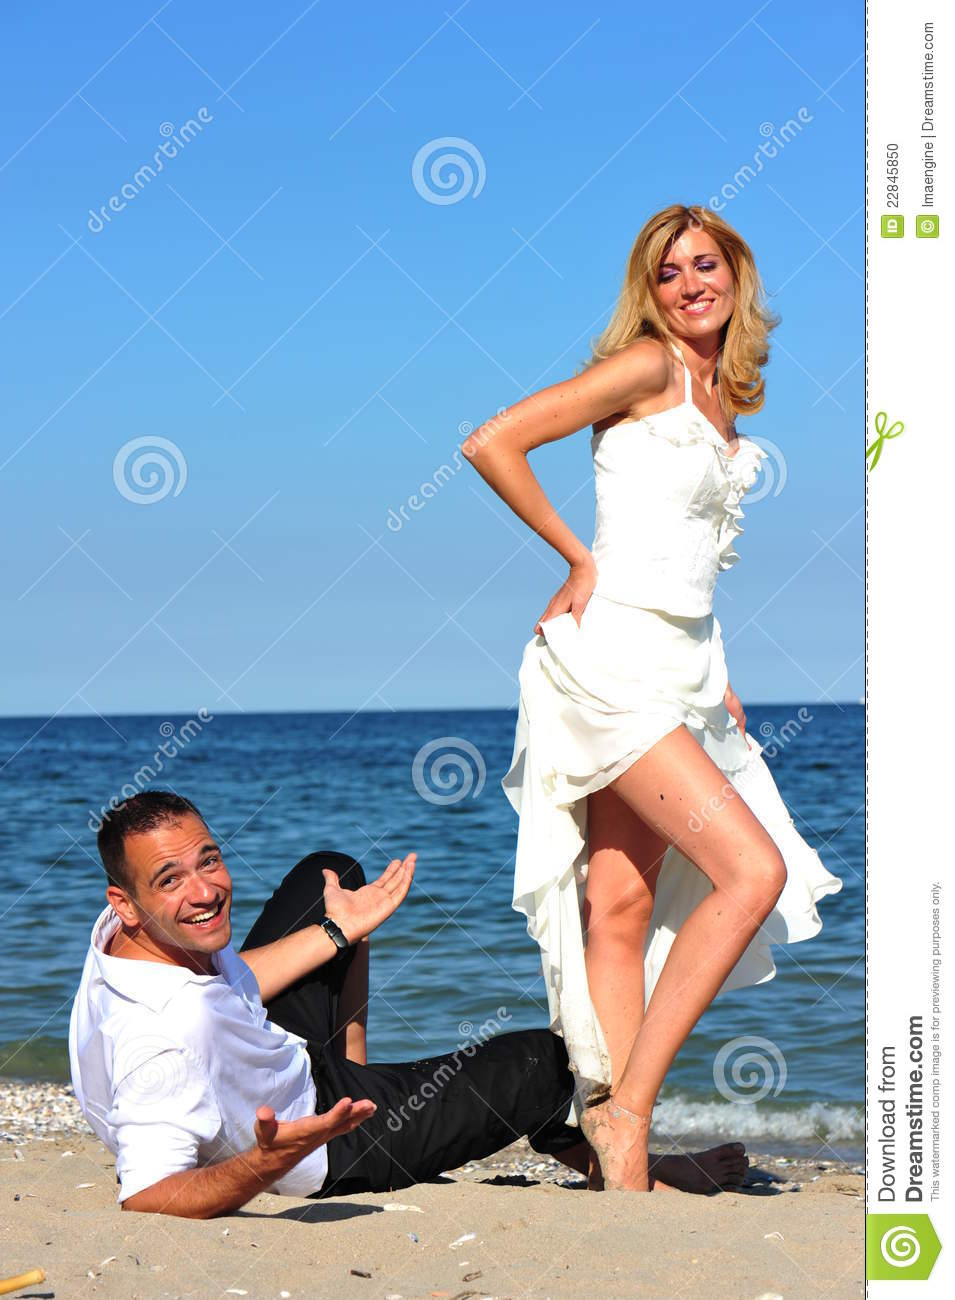 Bride tempting her man with sensual body language